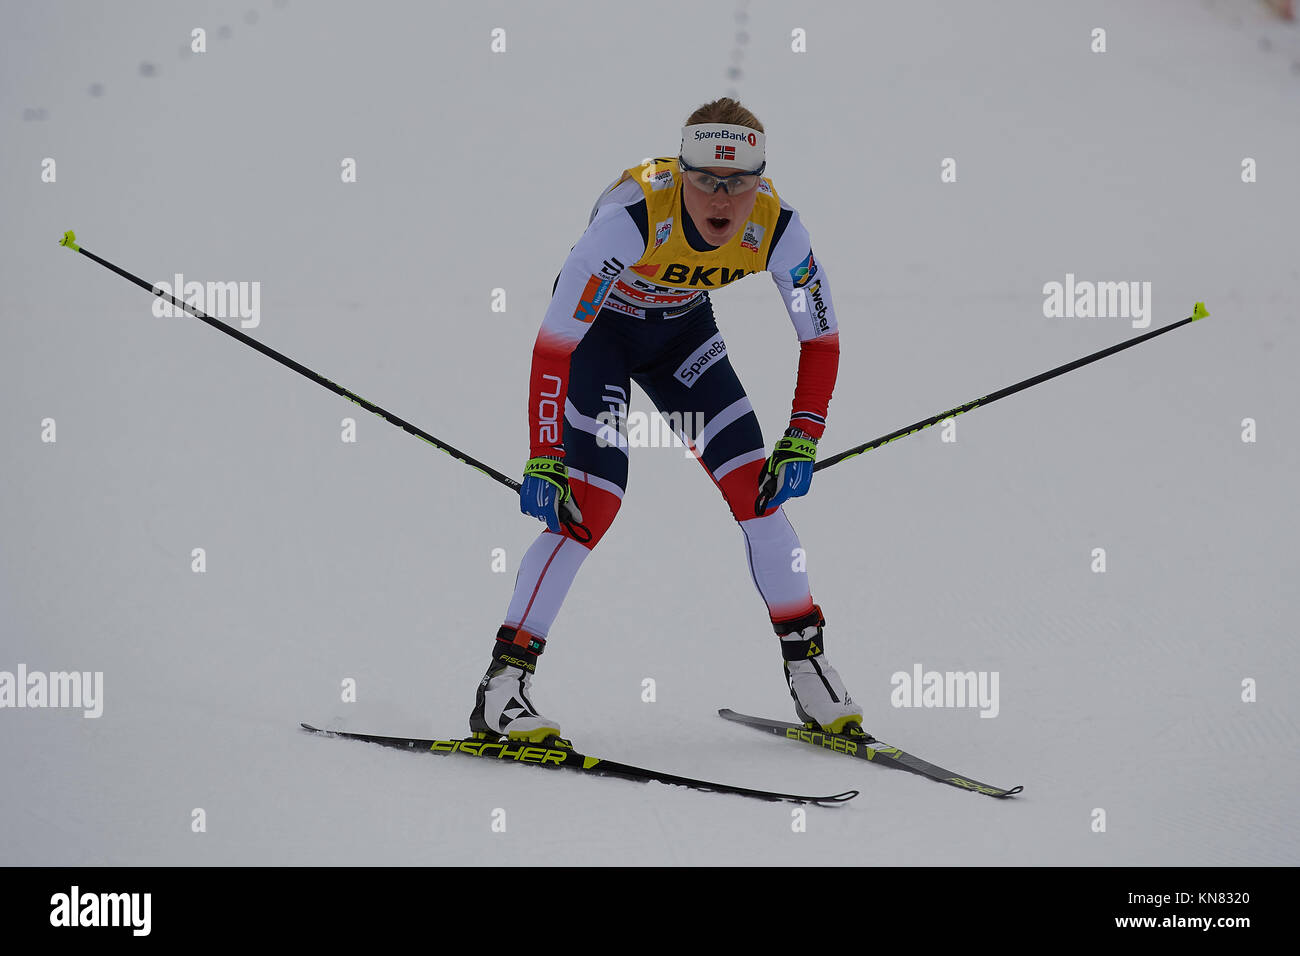 Davos, Switzerland, 10th December 2017. HAGA Ragnhild (NOR) at  the Ladies' 10 km F competition at the FIS Cross - Stock Image